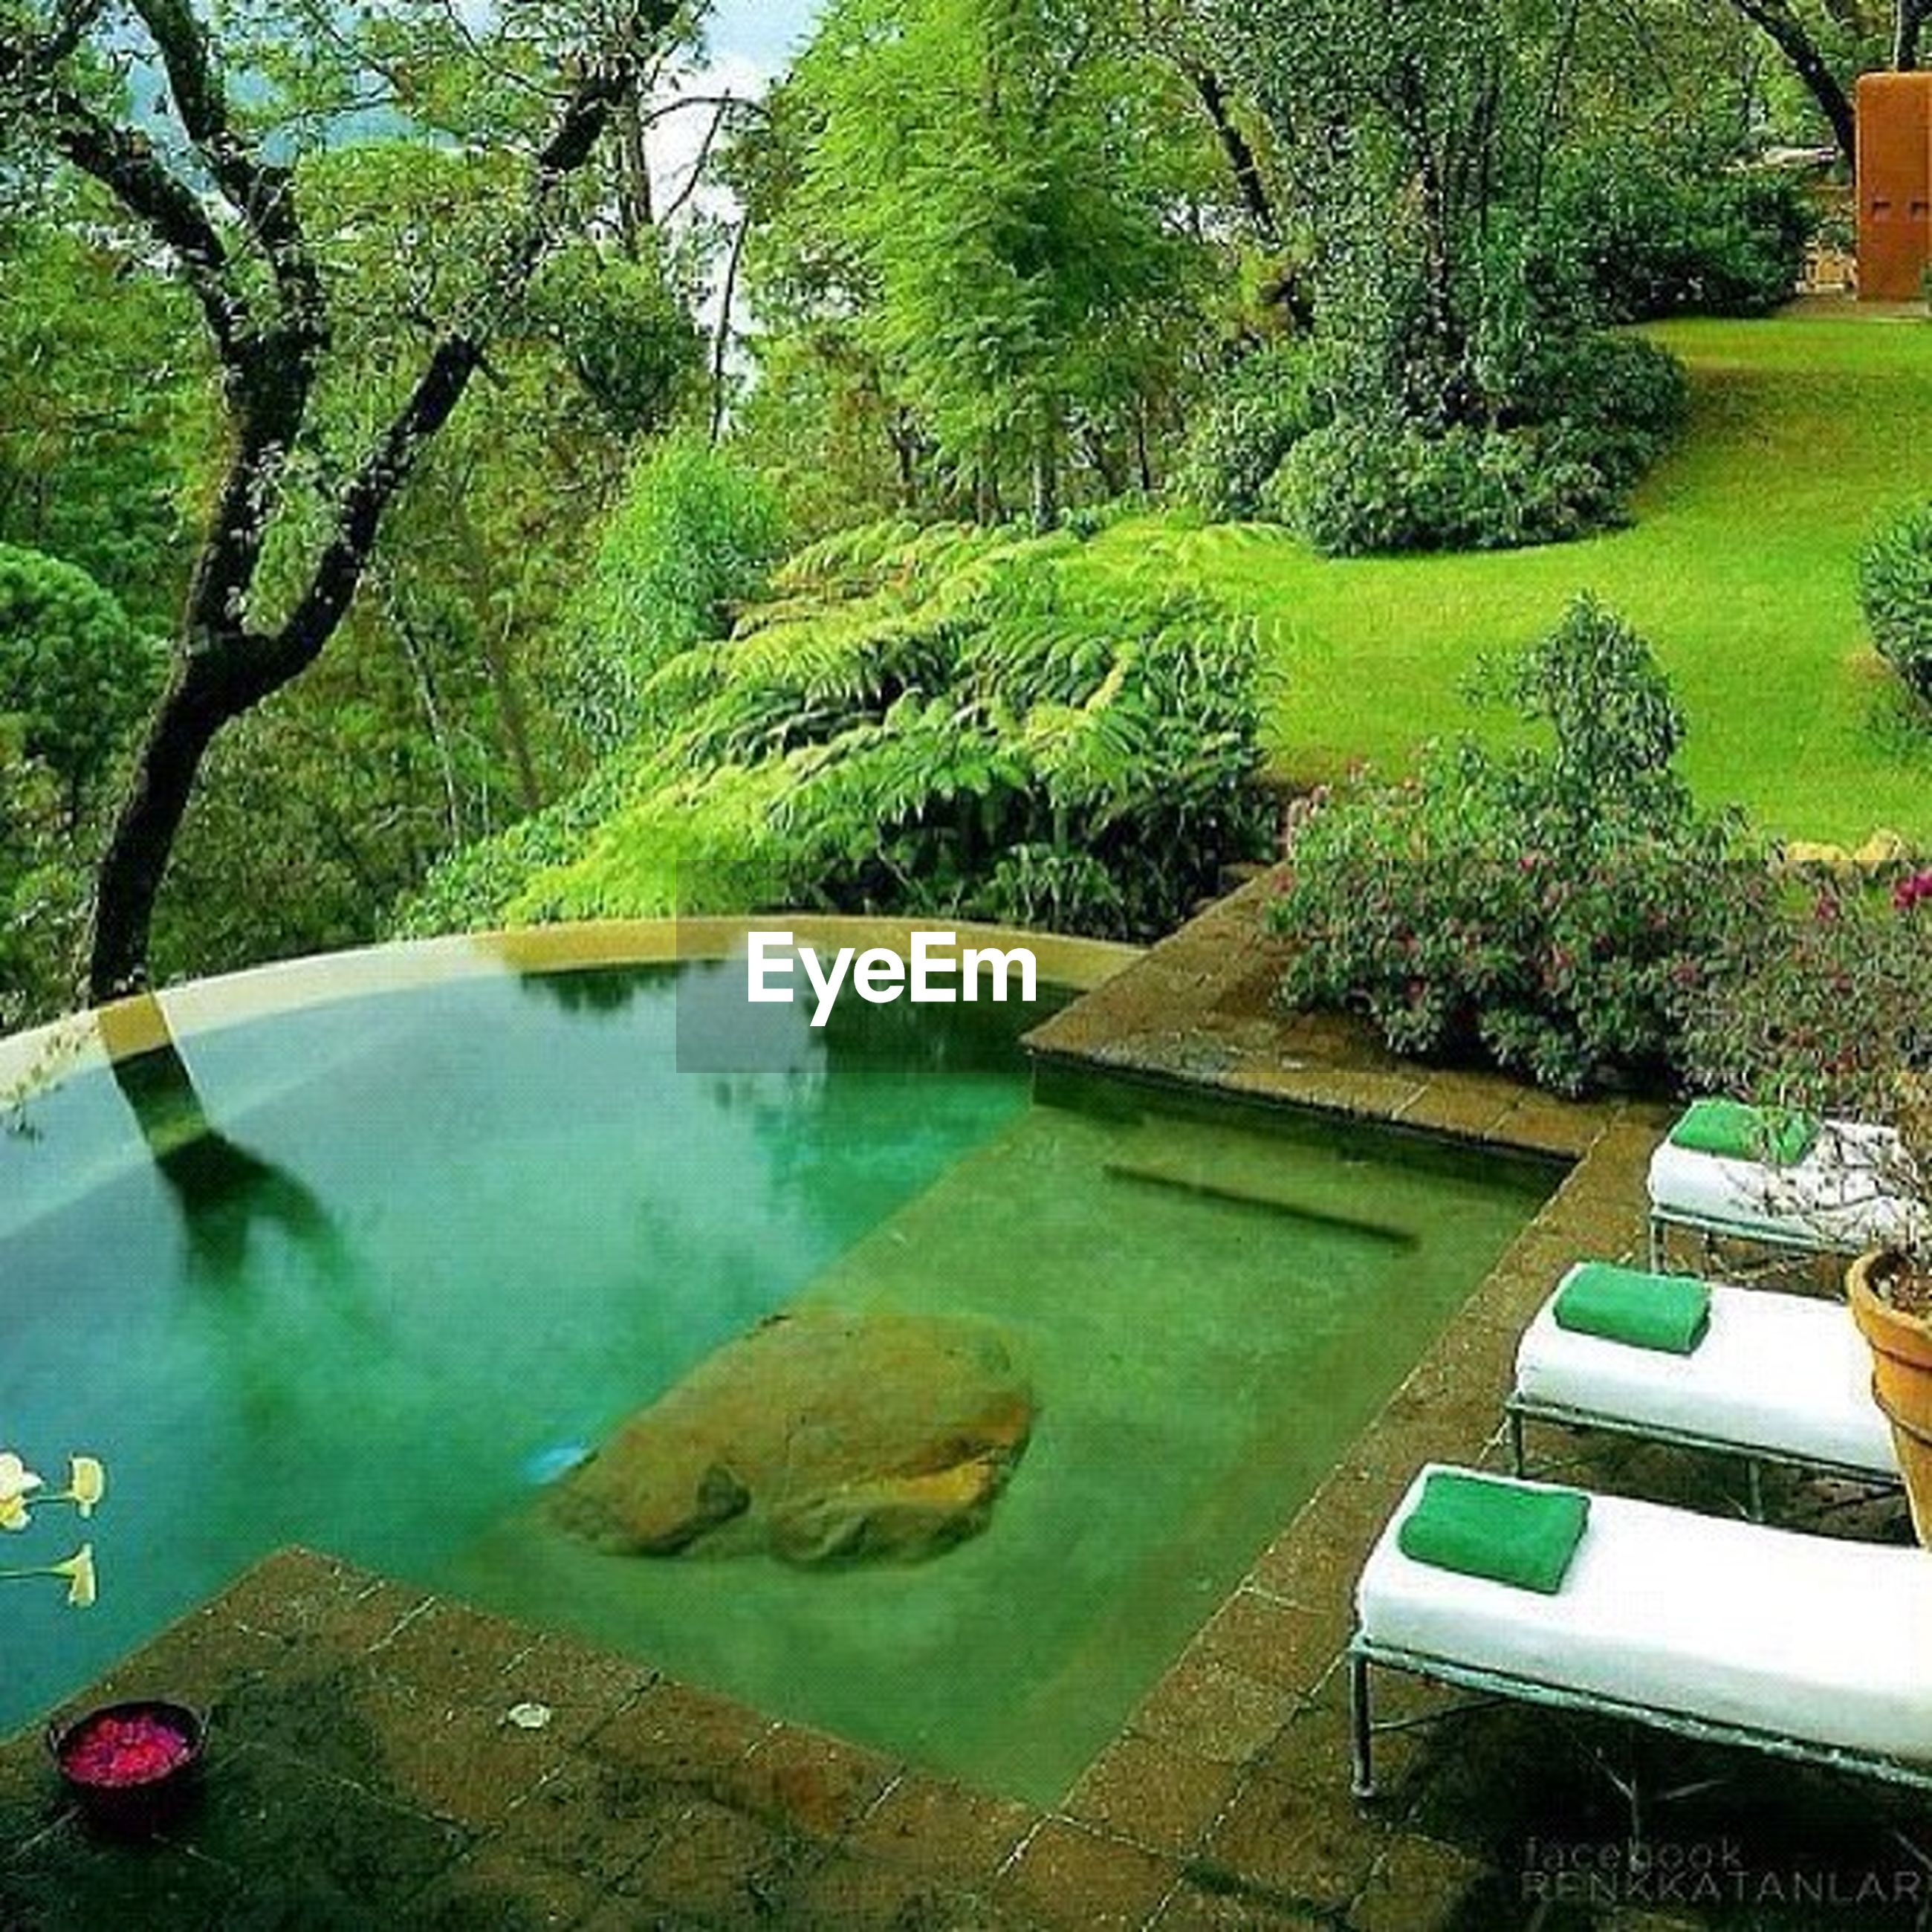 tree, water, green color, swimming pool, tranquility, growth, nature, high angle view, reflection, tranquil scene, pond, built structure, plant, day, beauty in nature, no people, grass, park - man made space, outdoors, absence